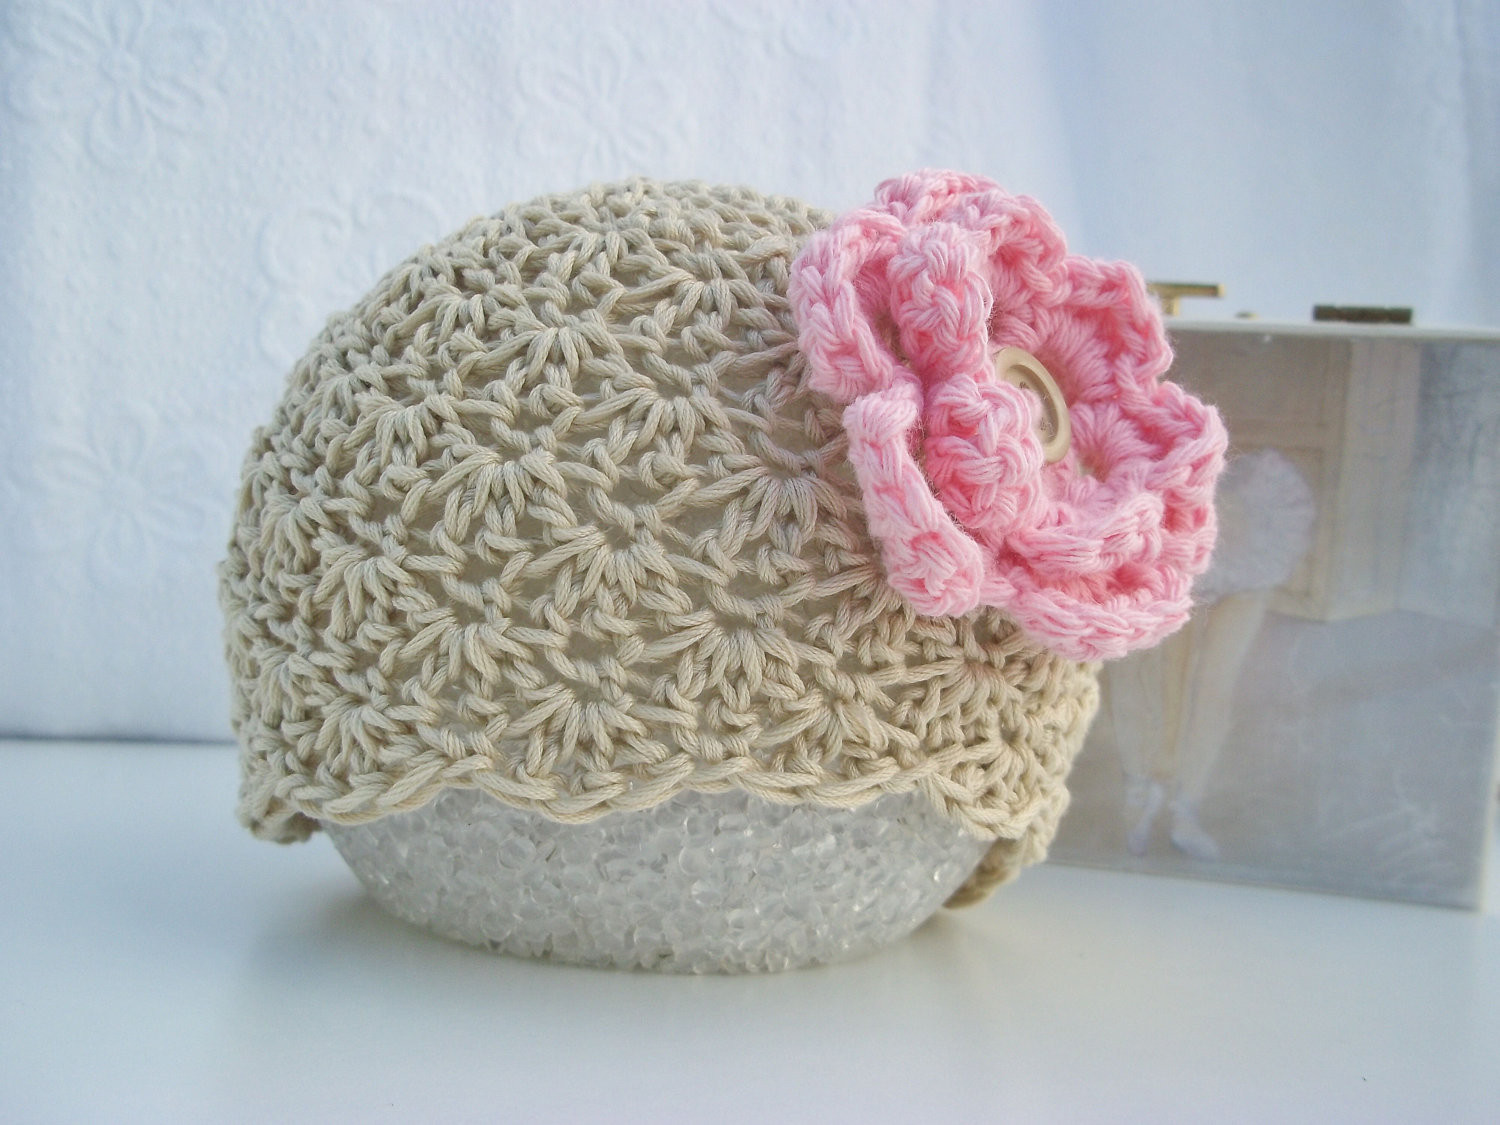 Crochet Girls Hats Luxury Crochet Baby Hat Baby Girl Hat Newborn Baby Hat Of New 46 Ideas Crochet Girls Hats